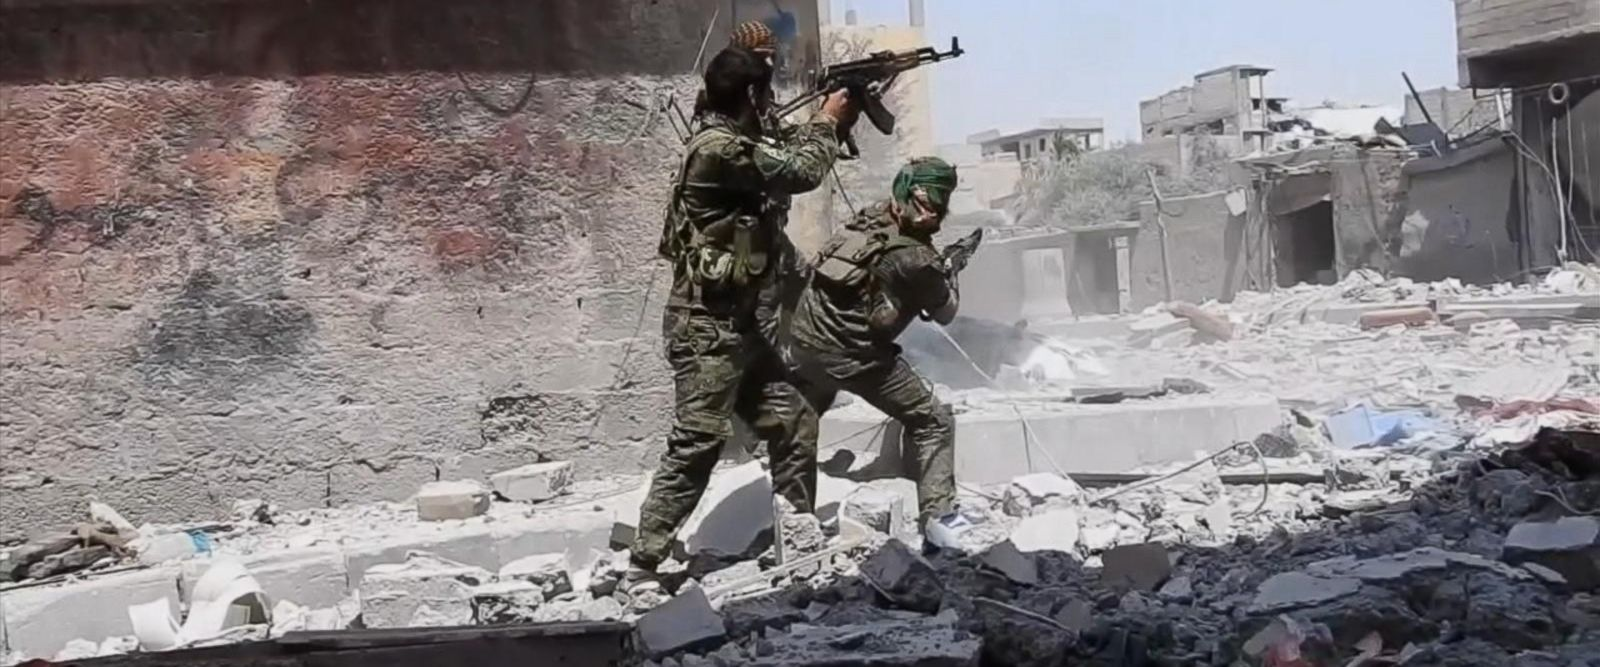 VIDEO: Syrian forces battle ISIS for the city of Raqqa